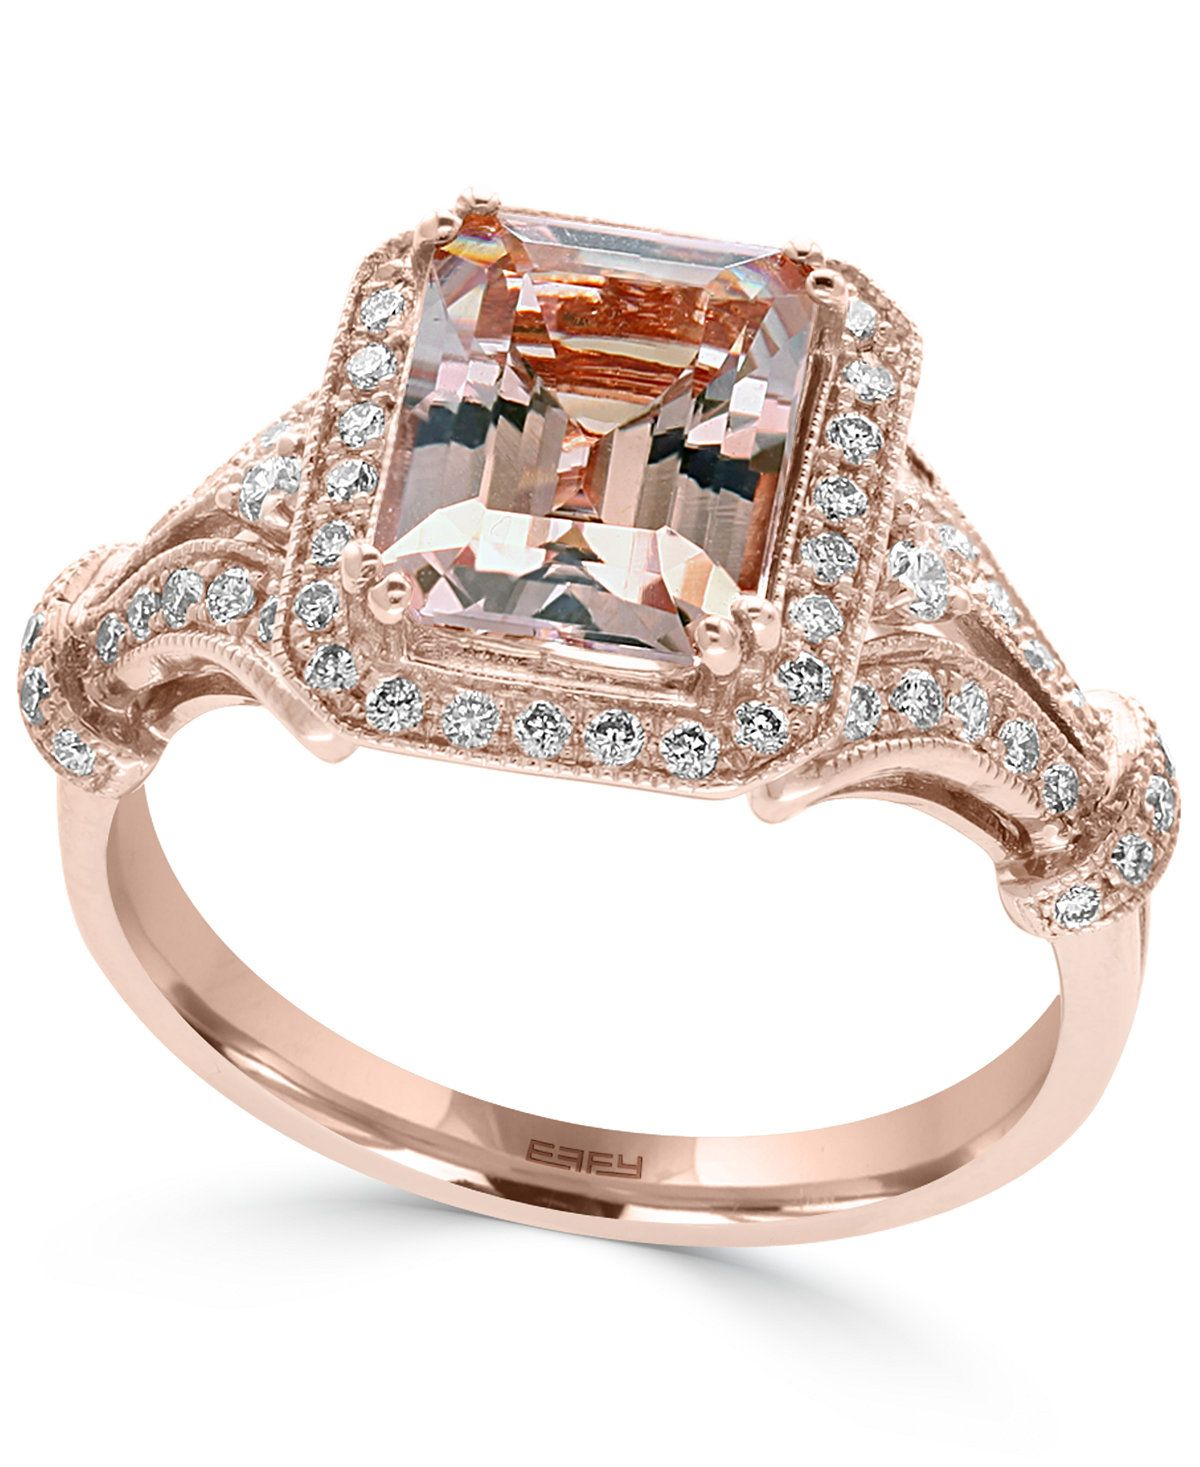 13674318c26d81 EFFY® Morganite (2-1 5 ct. t.w.) and Diamond (1 3 ct. t.w.) Ring in 14k  Rose Gold - Rings - Jewelry   Watches - Macy s